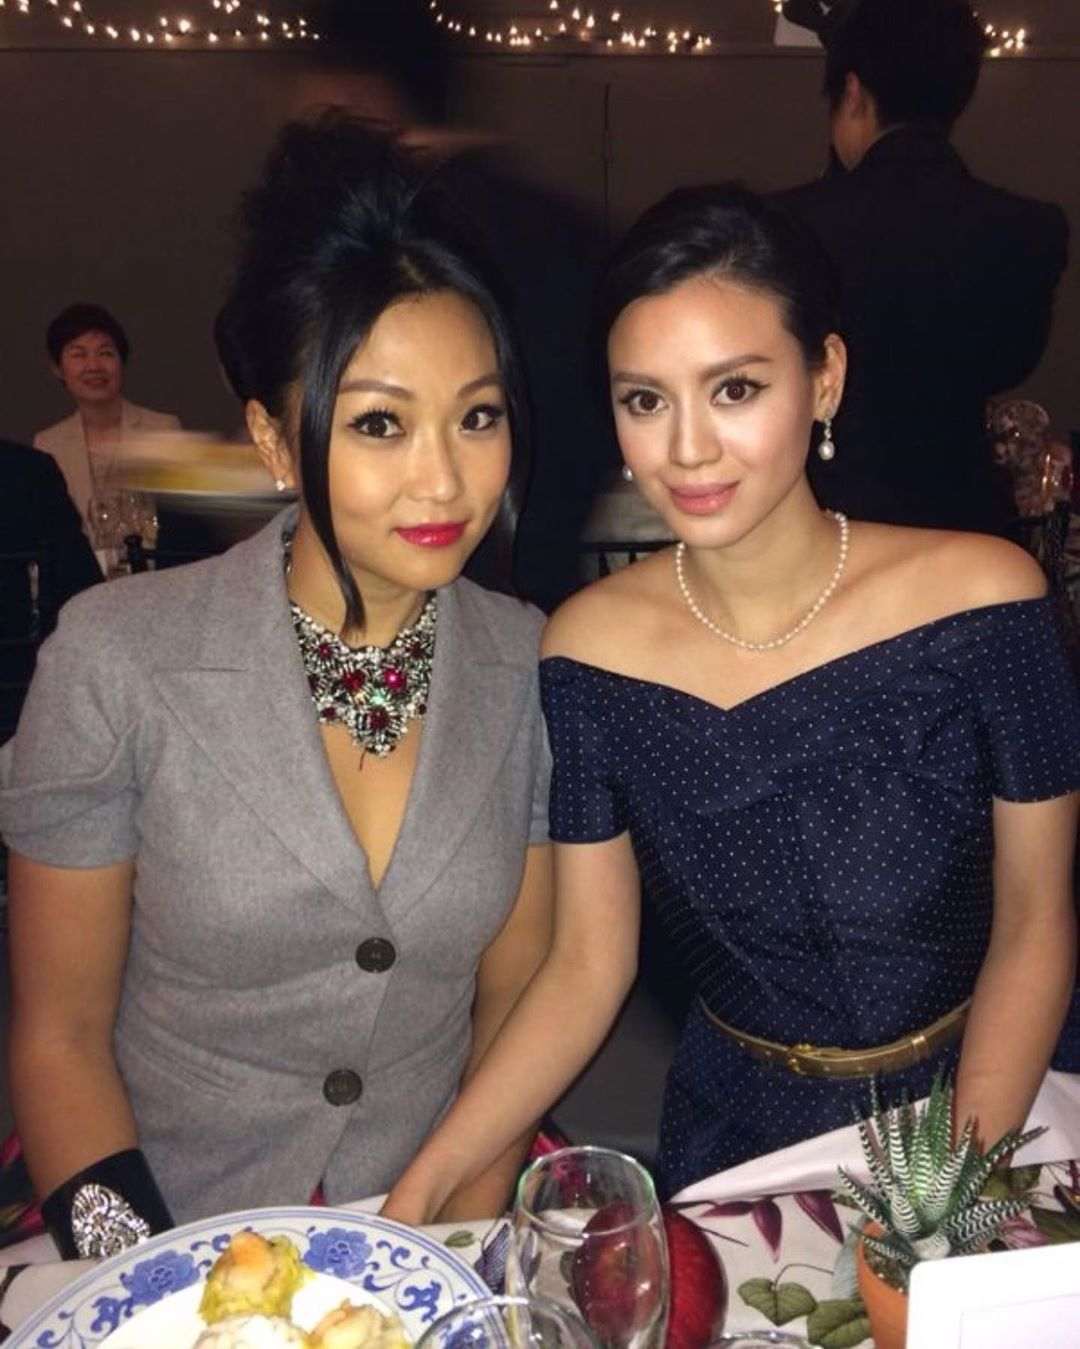 10 Best Tatlergrams: Emily Lam-Ho Gushes About Her Soulmate Veronica Chou and More